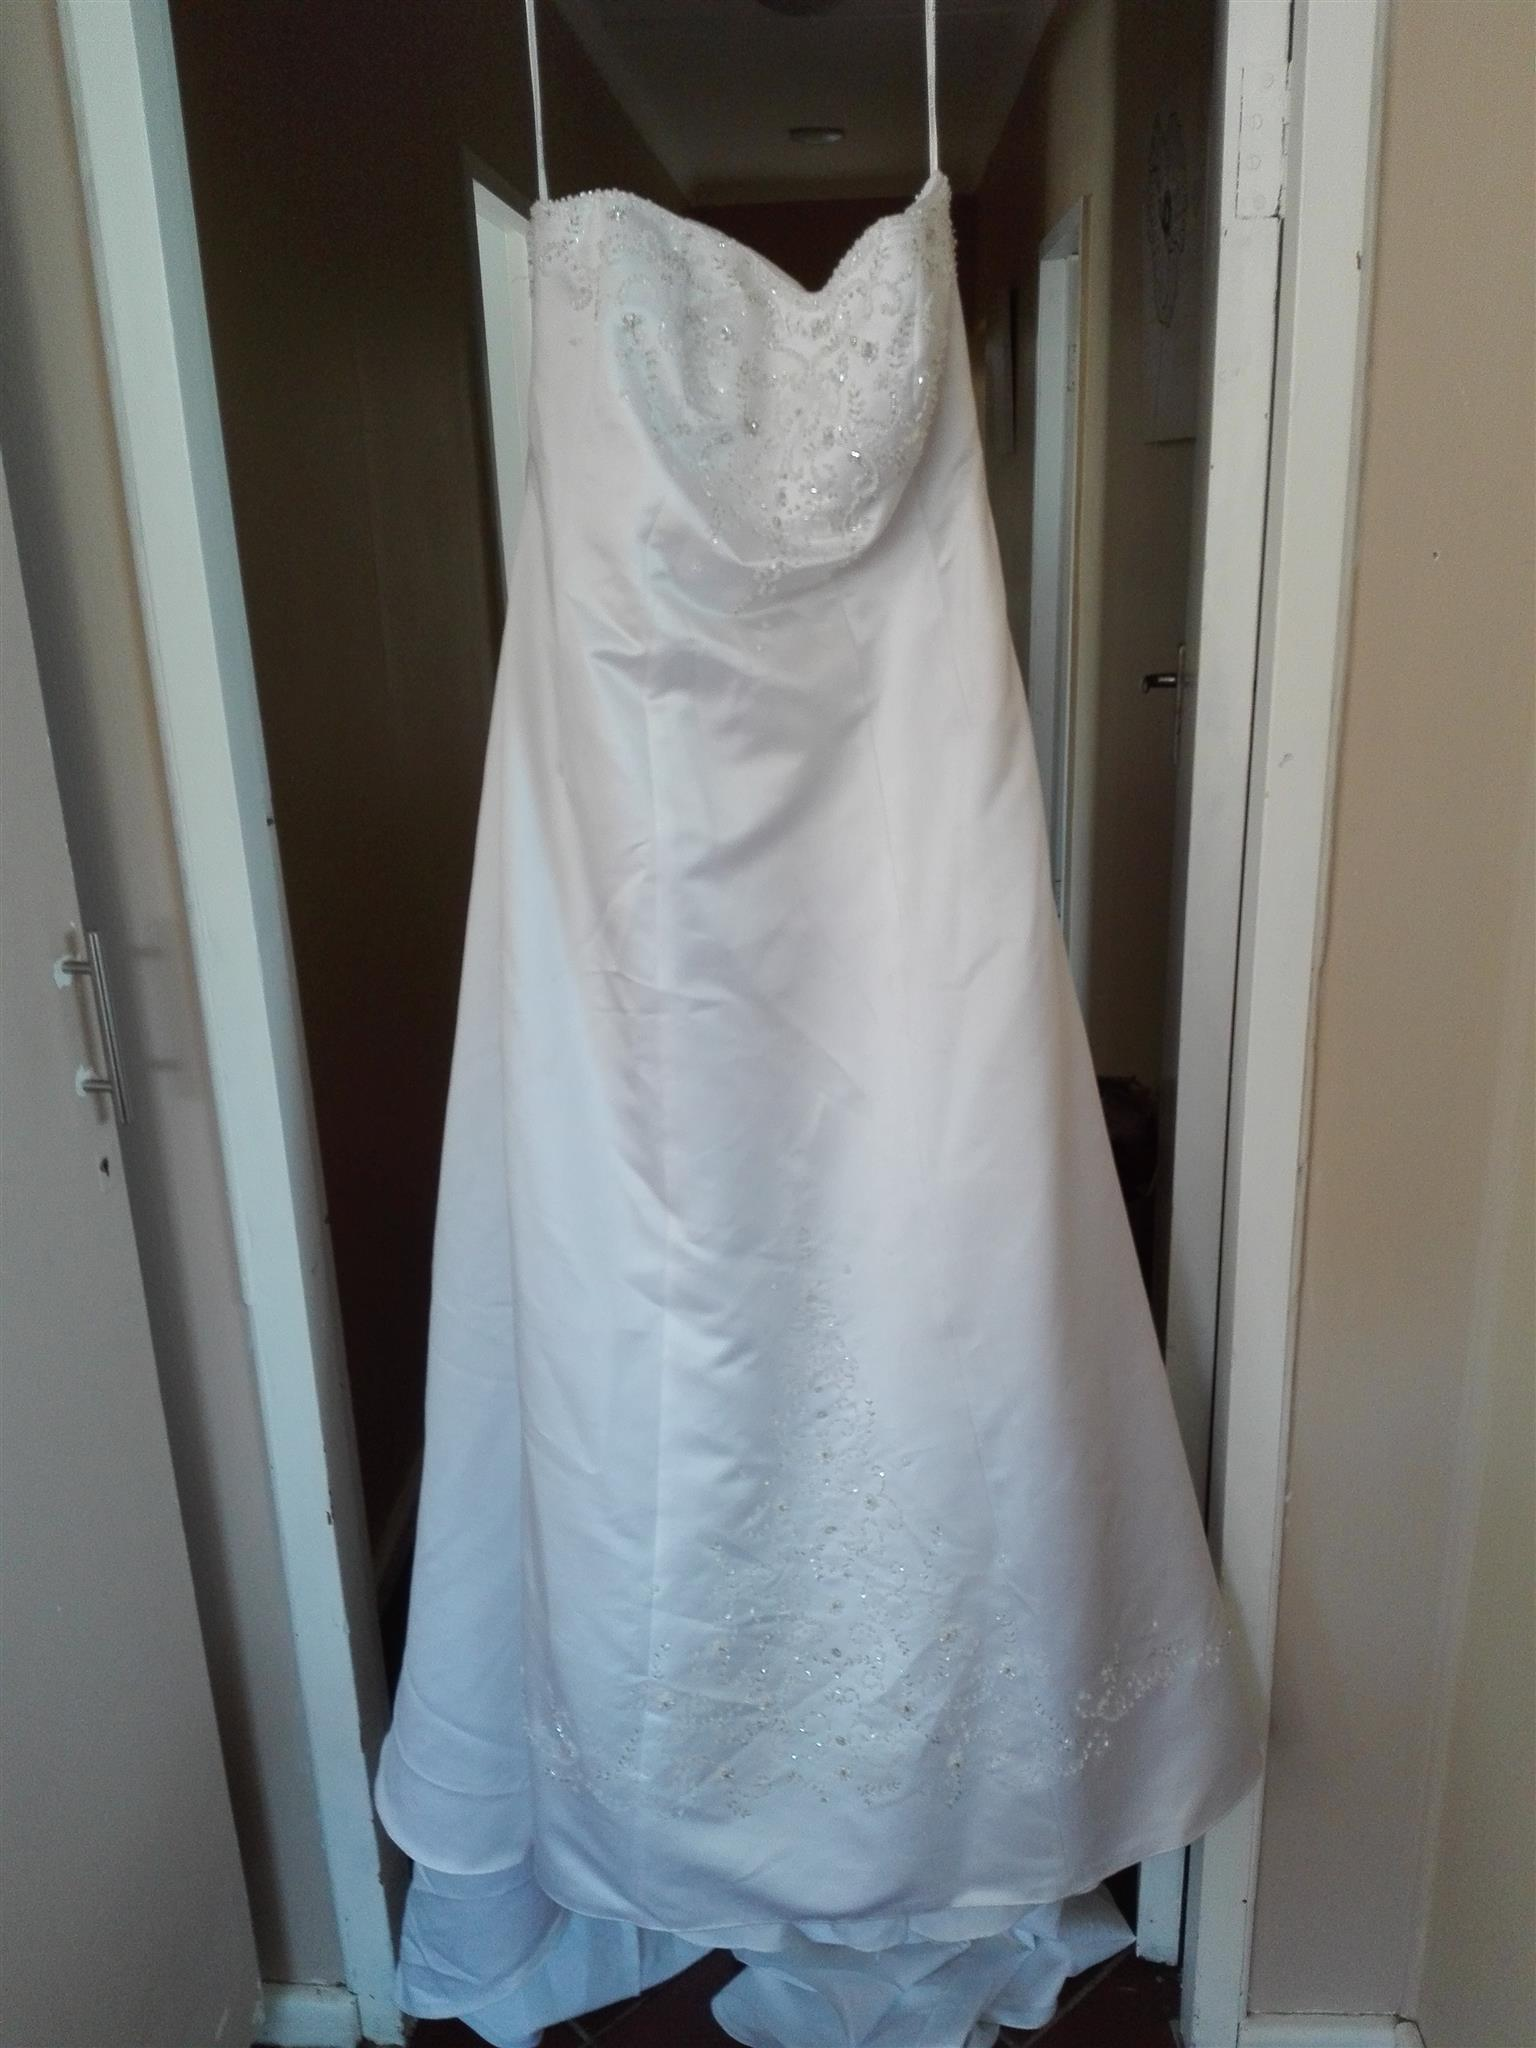 URGENT SALE plus size wedding gown (size 42) | Junk Mail